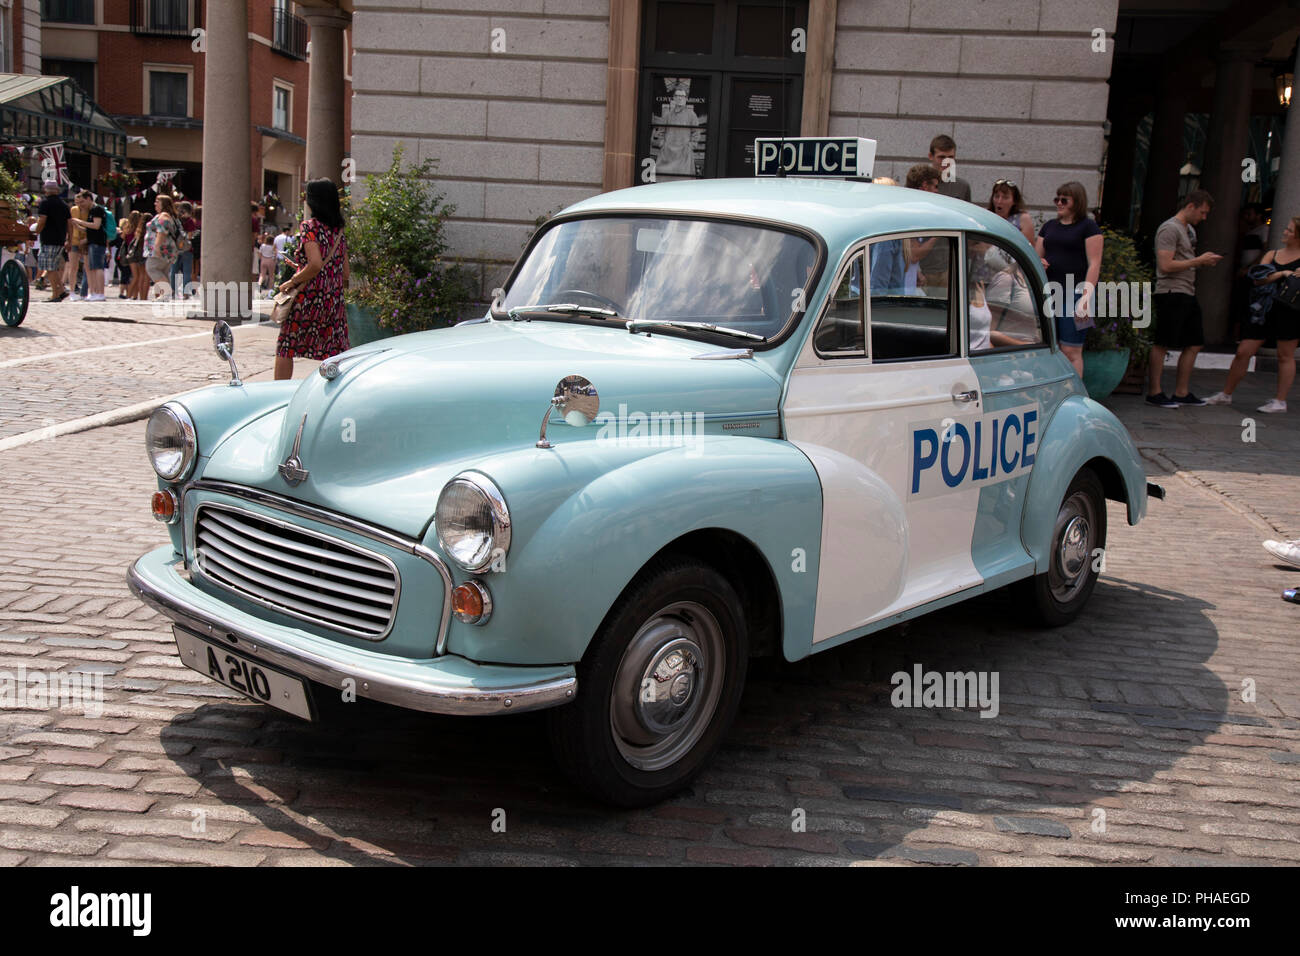 Vintage Morris Minor police car in London, United Kingdom. The Morris Minor is a British car of which more than 1.6million were manufactured between 1948 and 1972. Initially available as a two-door saloon, the range was expanded to include a four-door saloon. It was the first British car to sell over one million units and is considered a classic example of automotive design, as well as typifying Englishness. Stock Photo